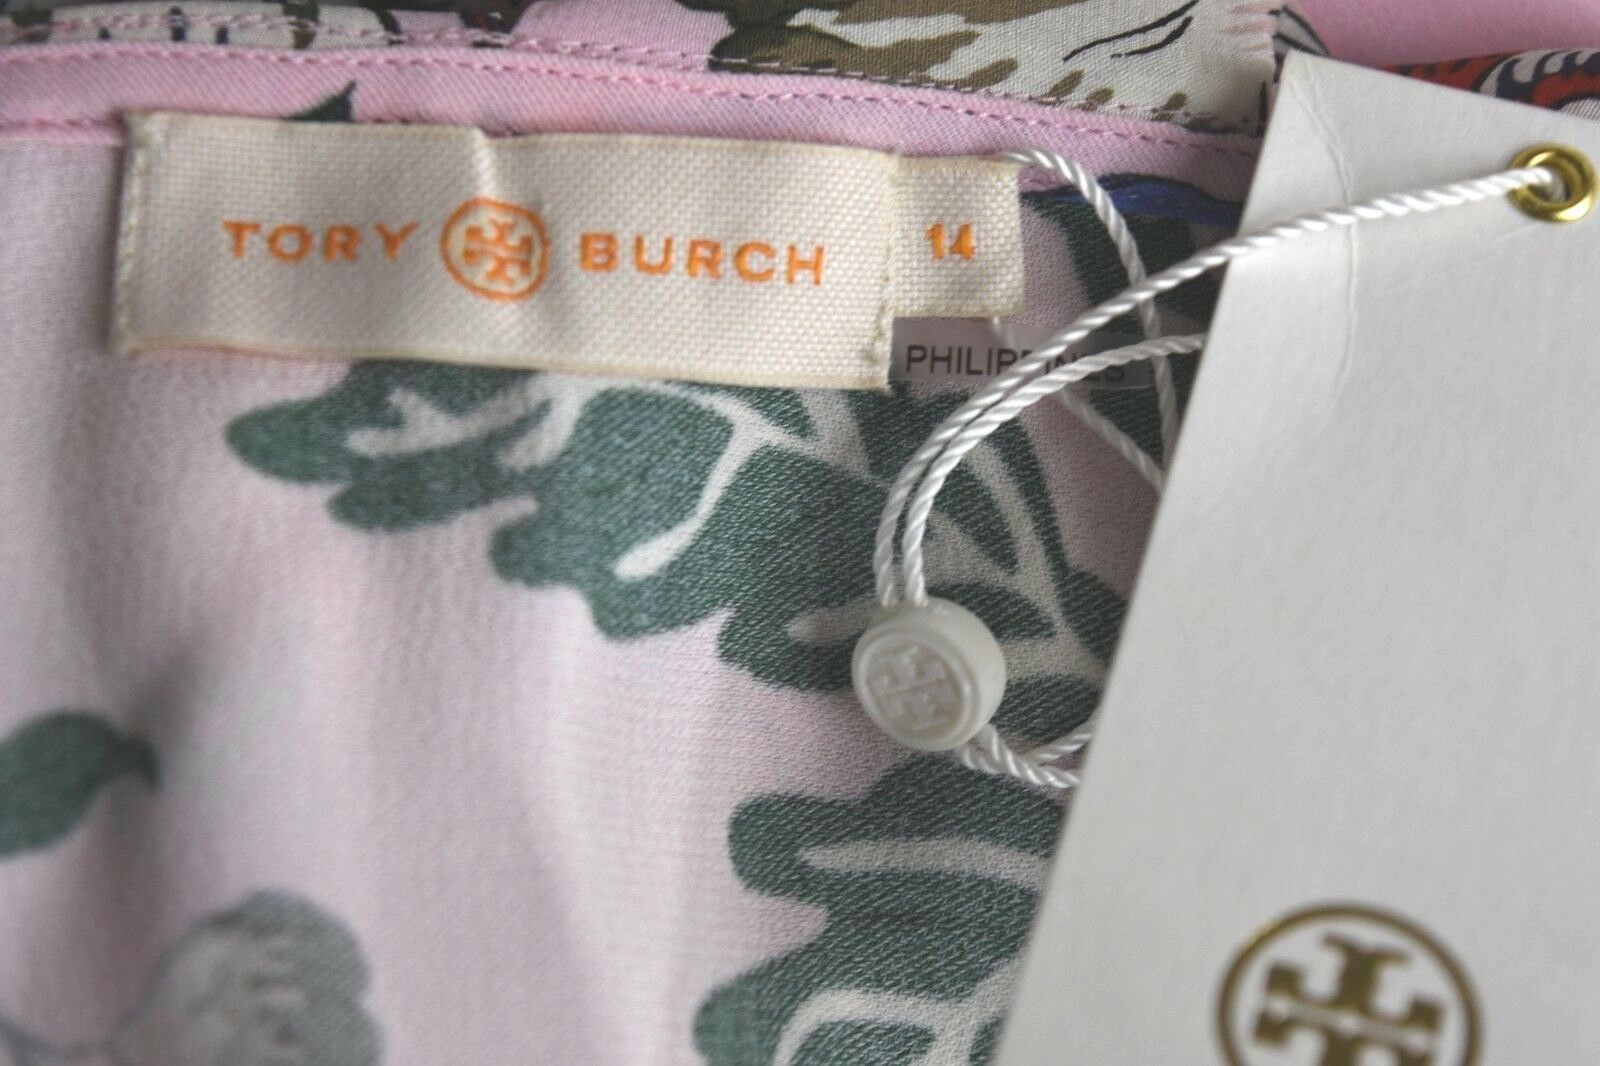 NEW Tory Burch ADELIA Ruffled Ruffled Ruffled Floral Wrap Dress Pink HAPPY TIMES  2 4 6 8 10 12 5a06be